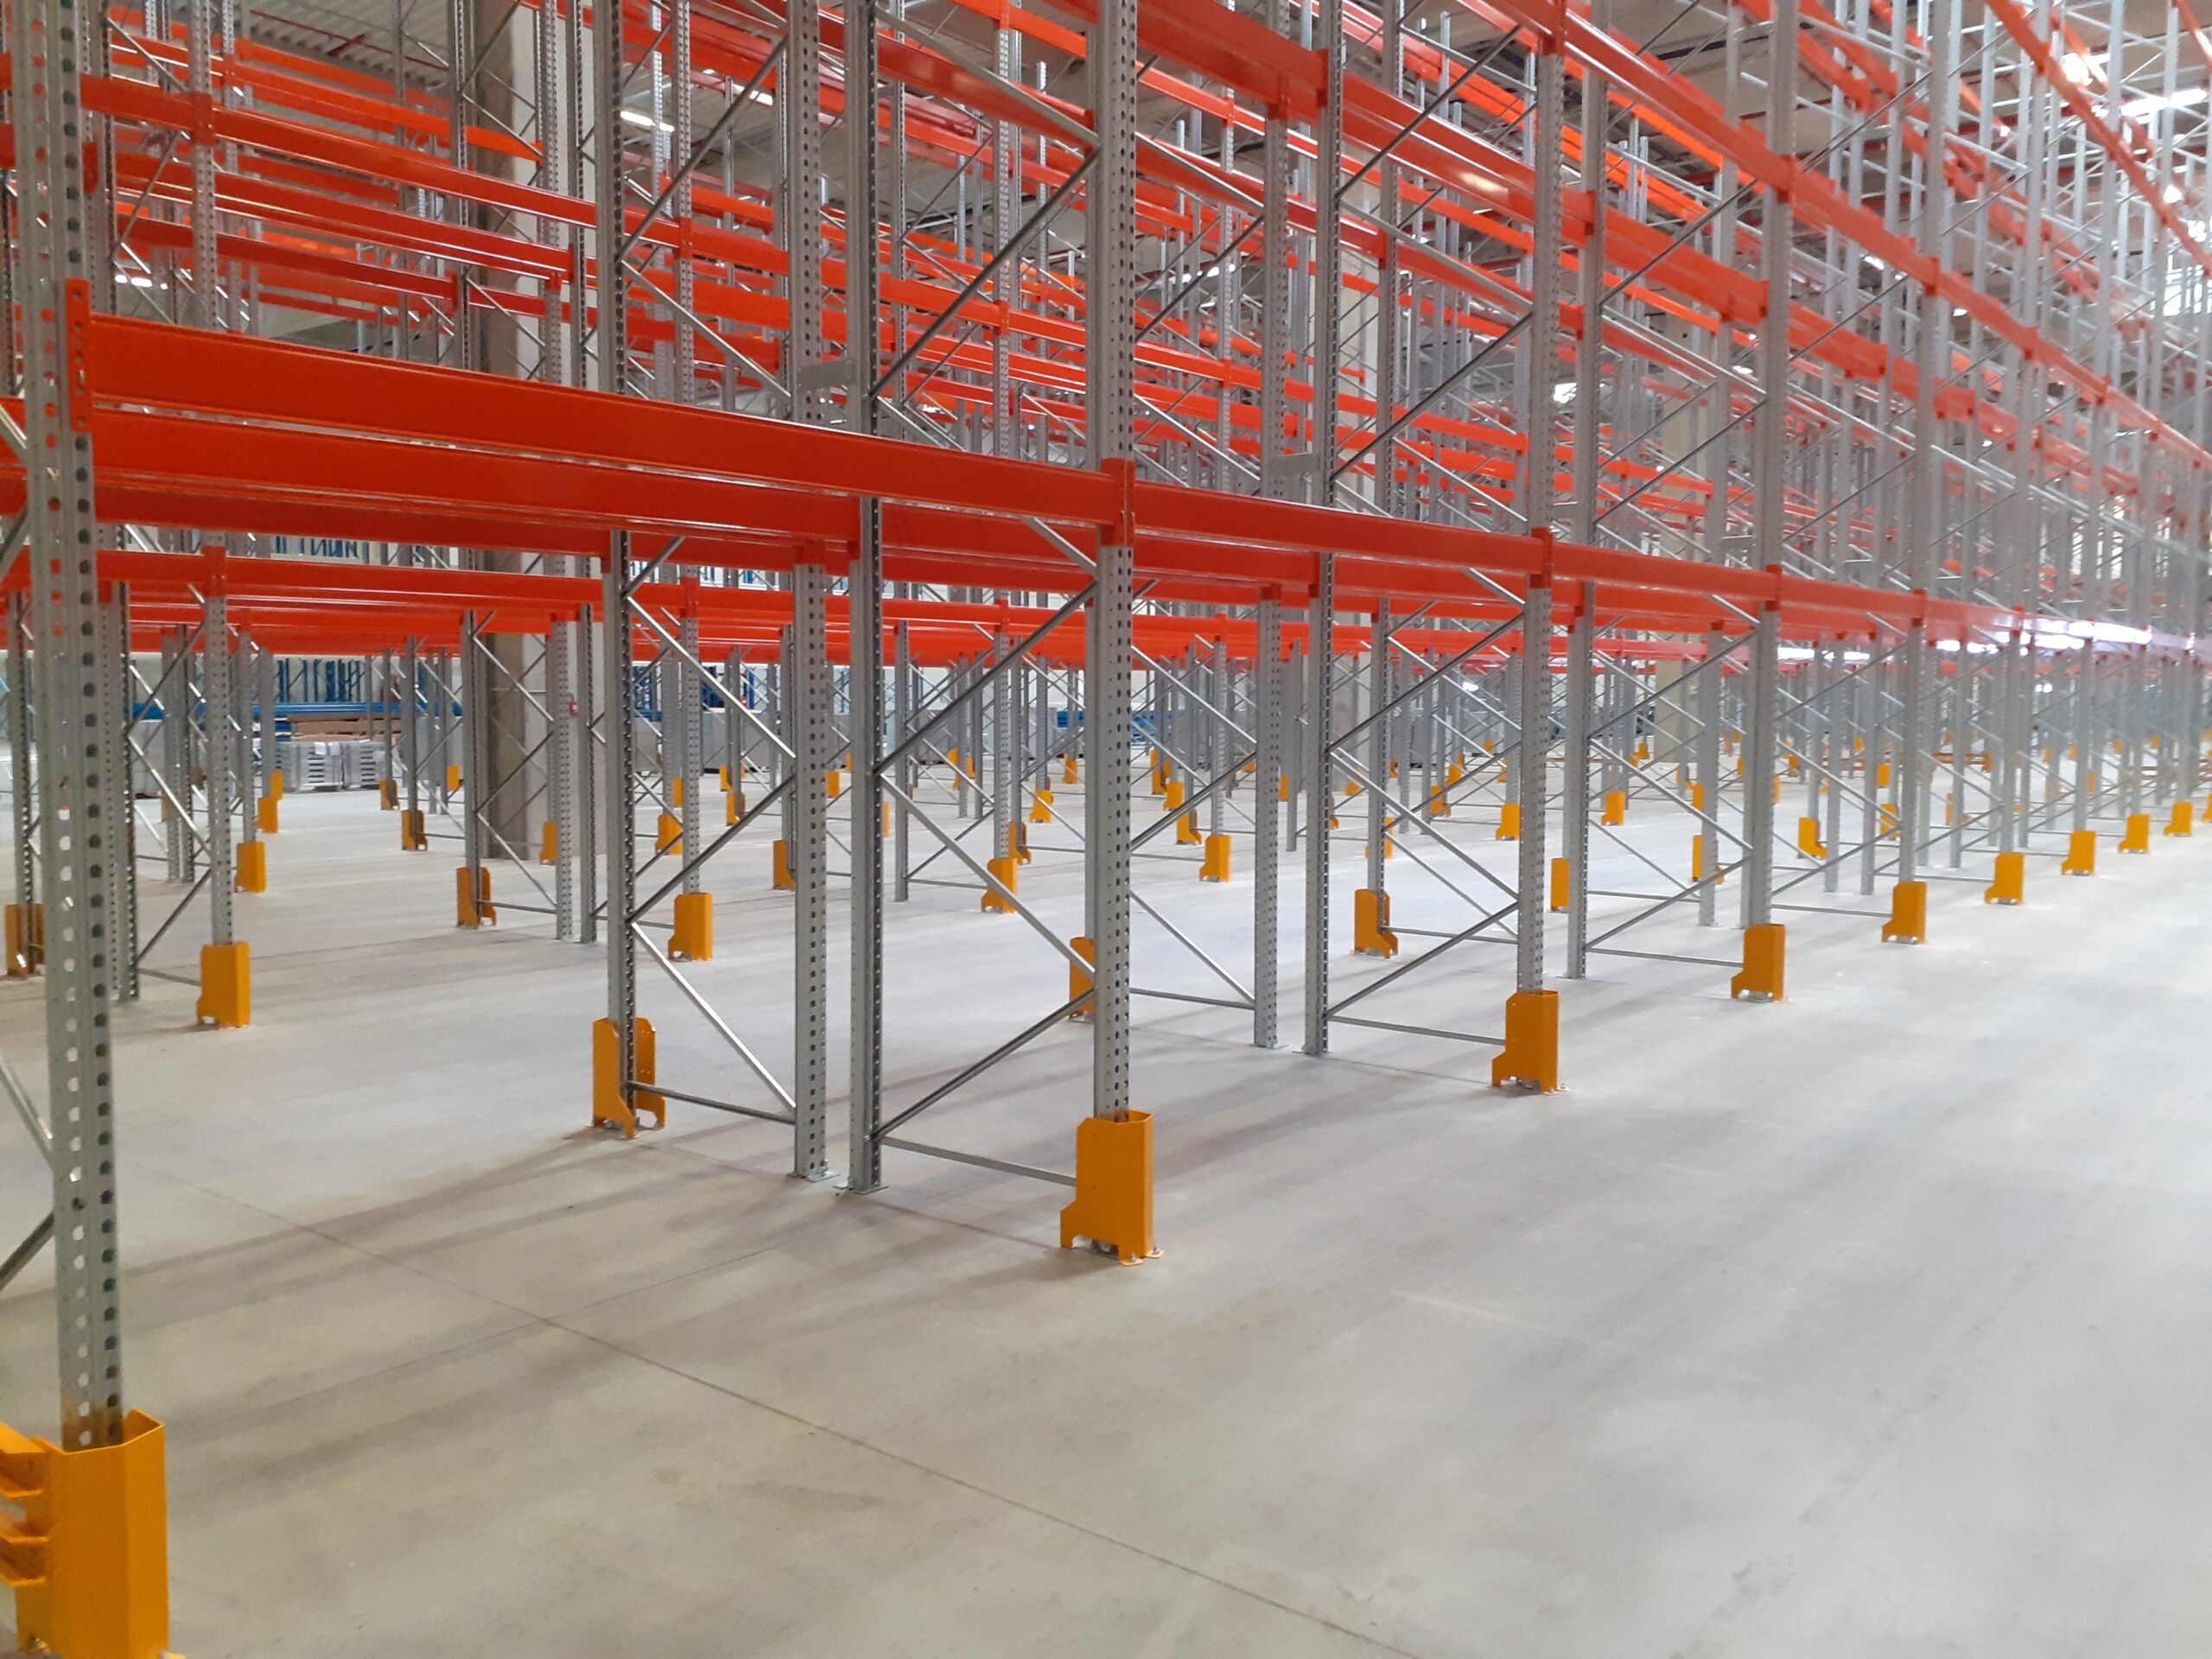 pallet racl system-view from a side